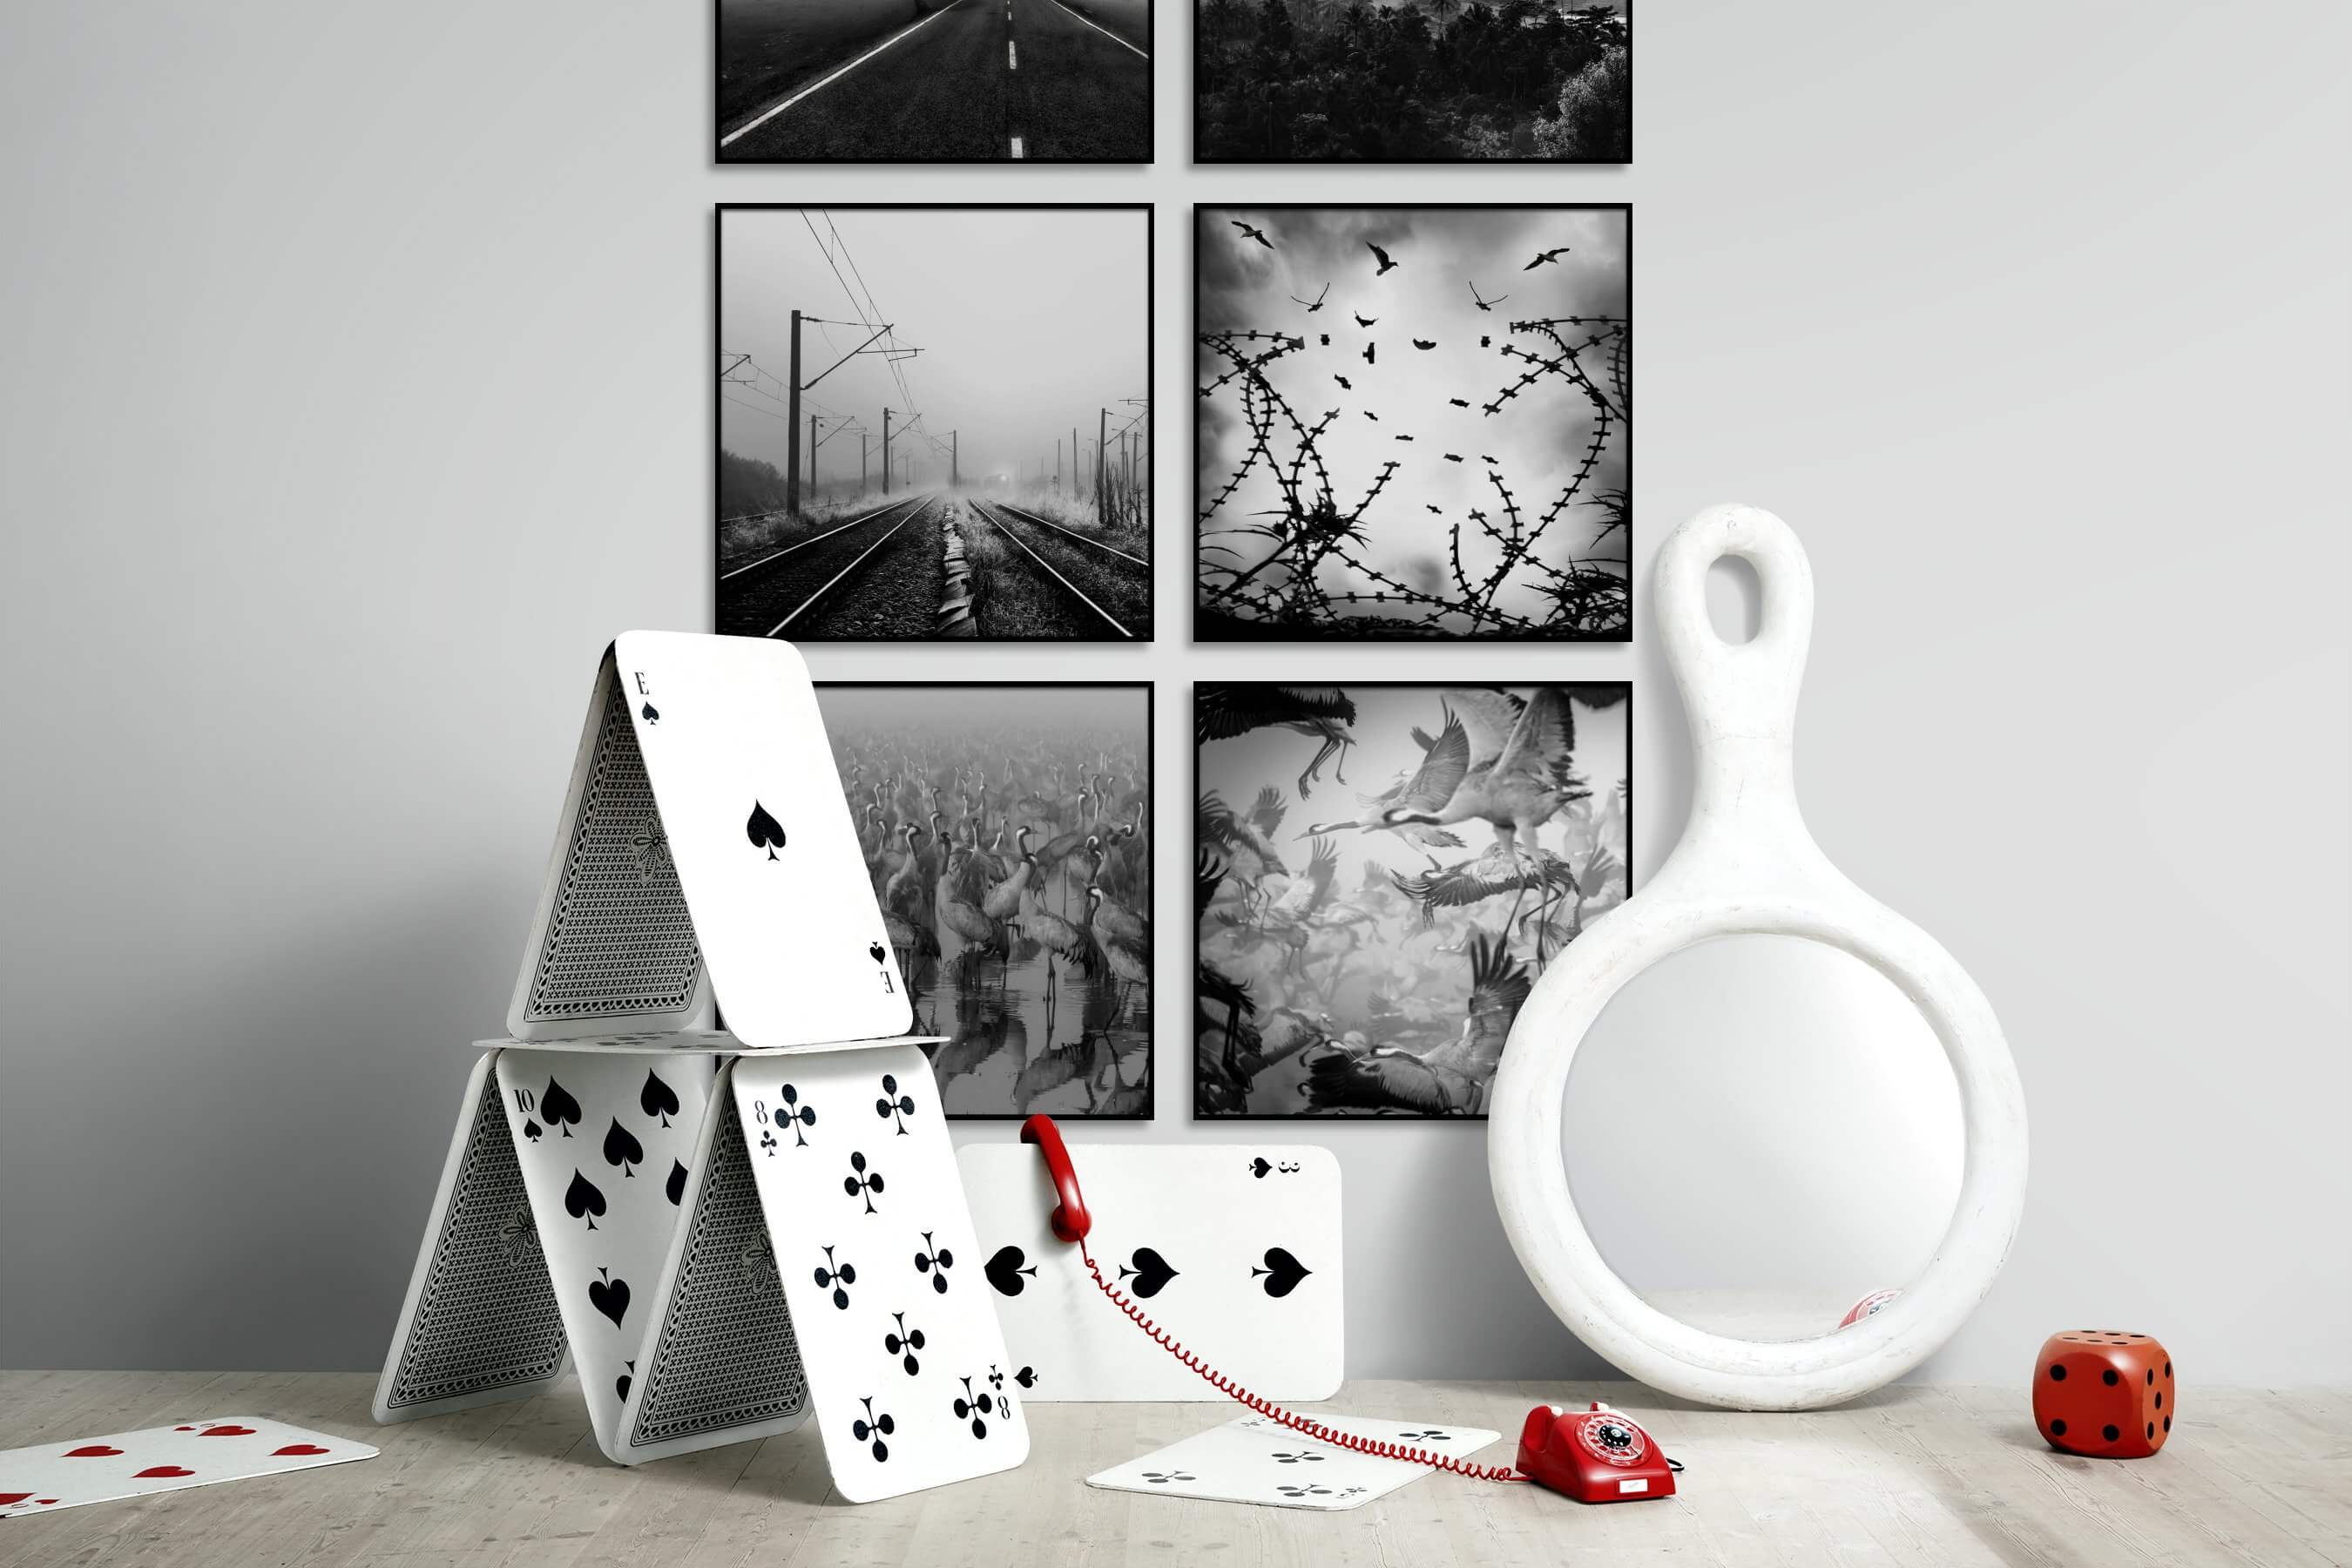 Gallery wall idea with six framed pictures arranged on a wall depicting Black & White, Country Life, Nature, For the Moderate, Animals, and For the Maximalist